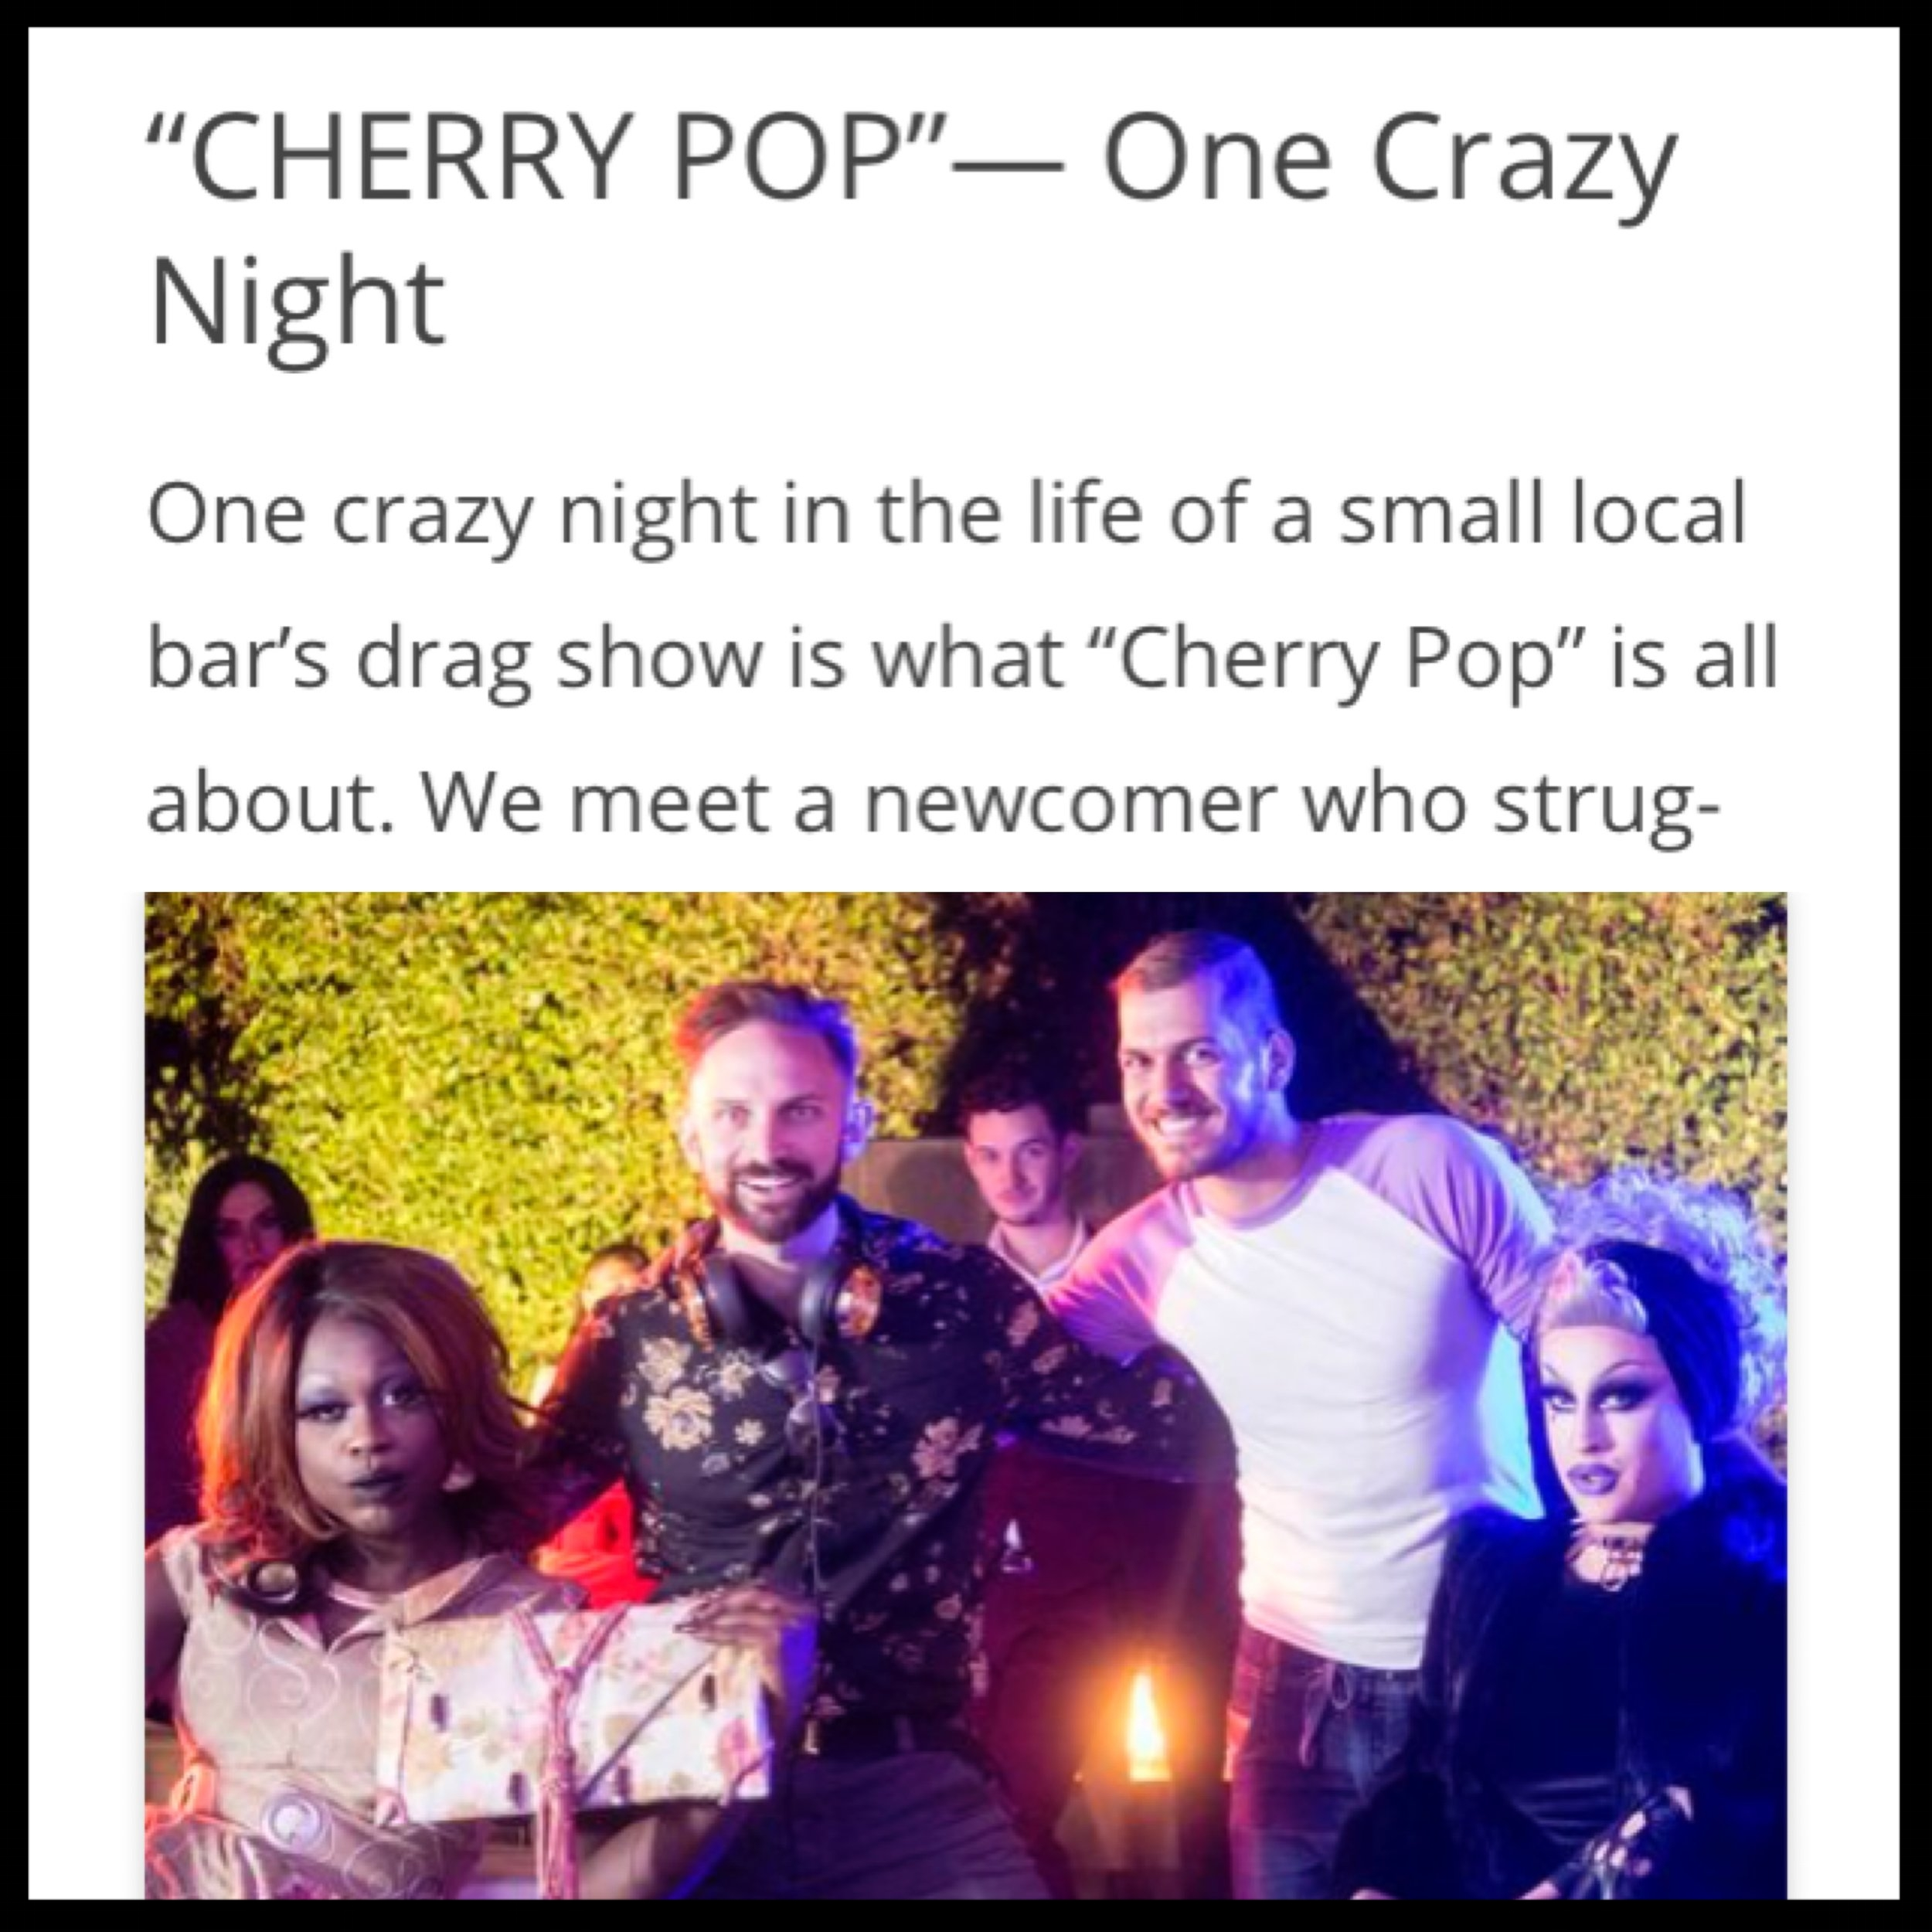 CHERRY POP REVIEW